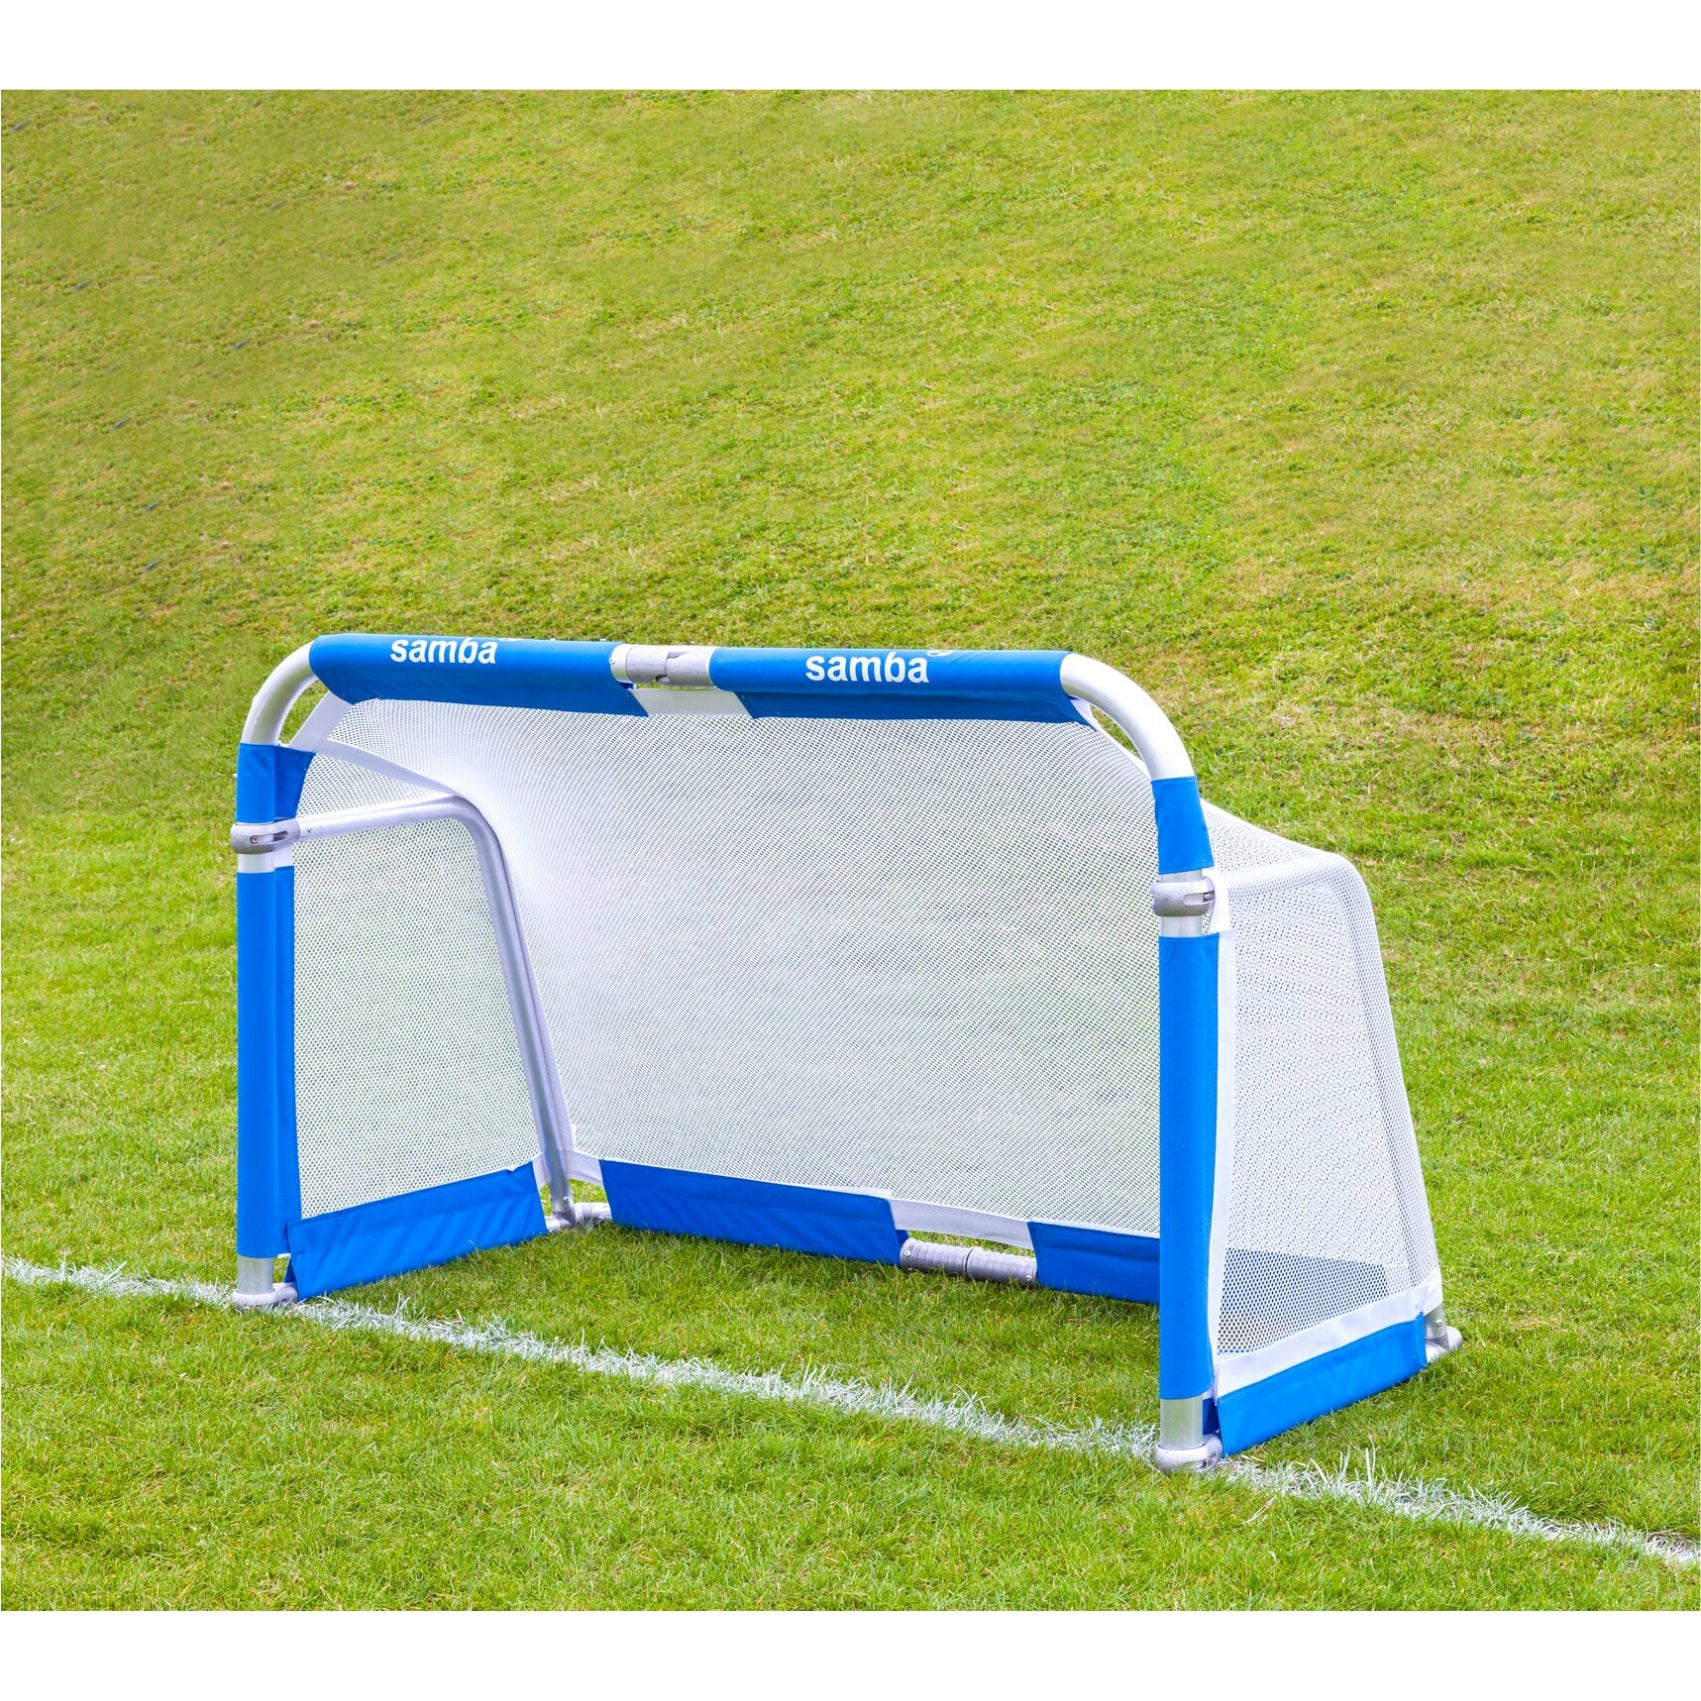 Samba 5' x 3' Aluminium Folding Goal on grass. Blue net fastening around the goal posts, white net